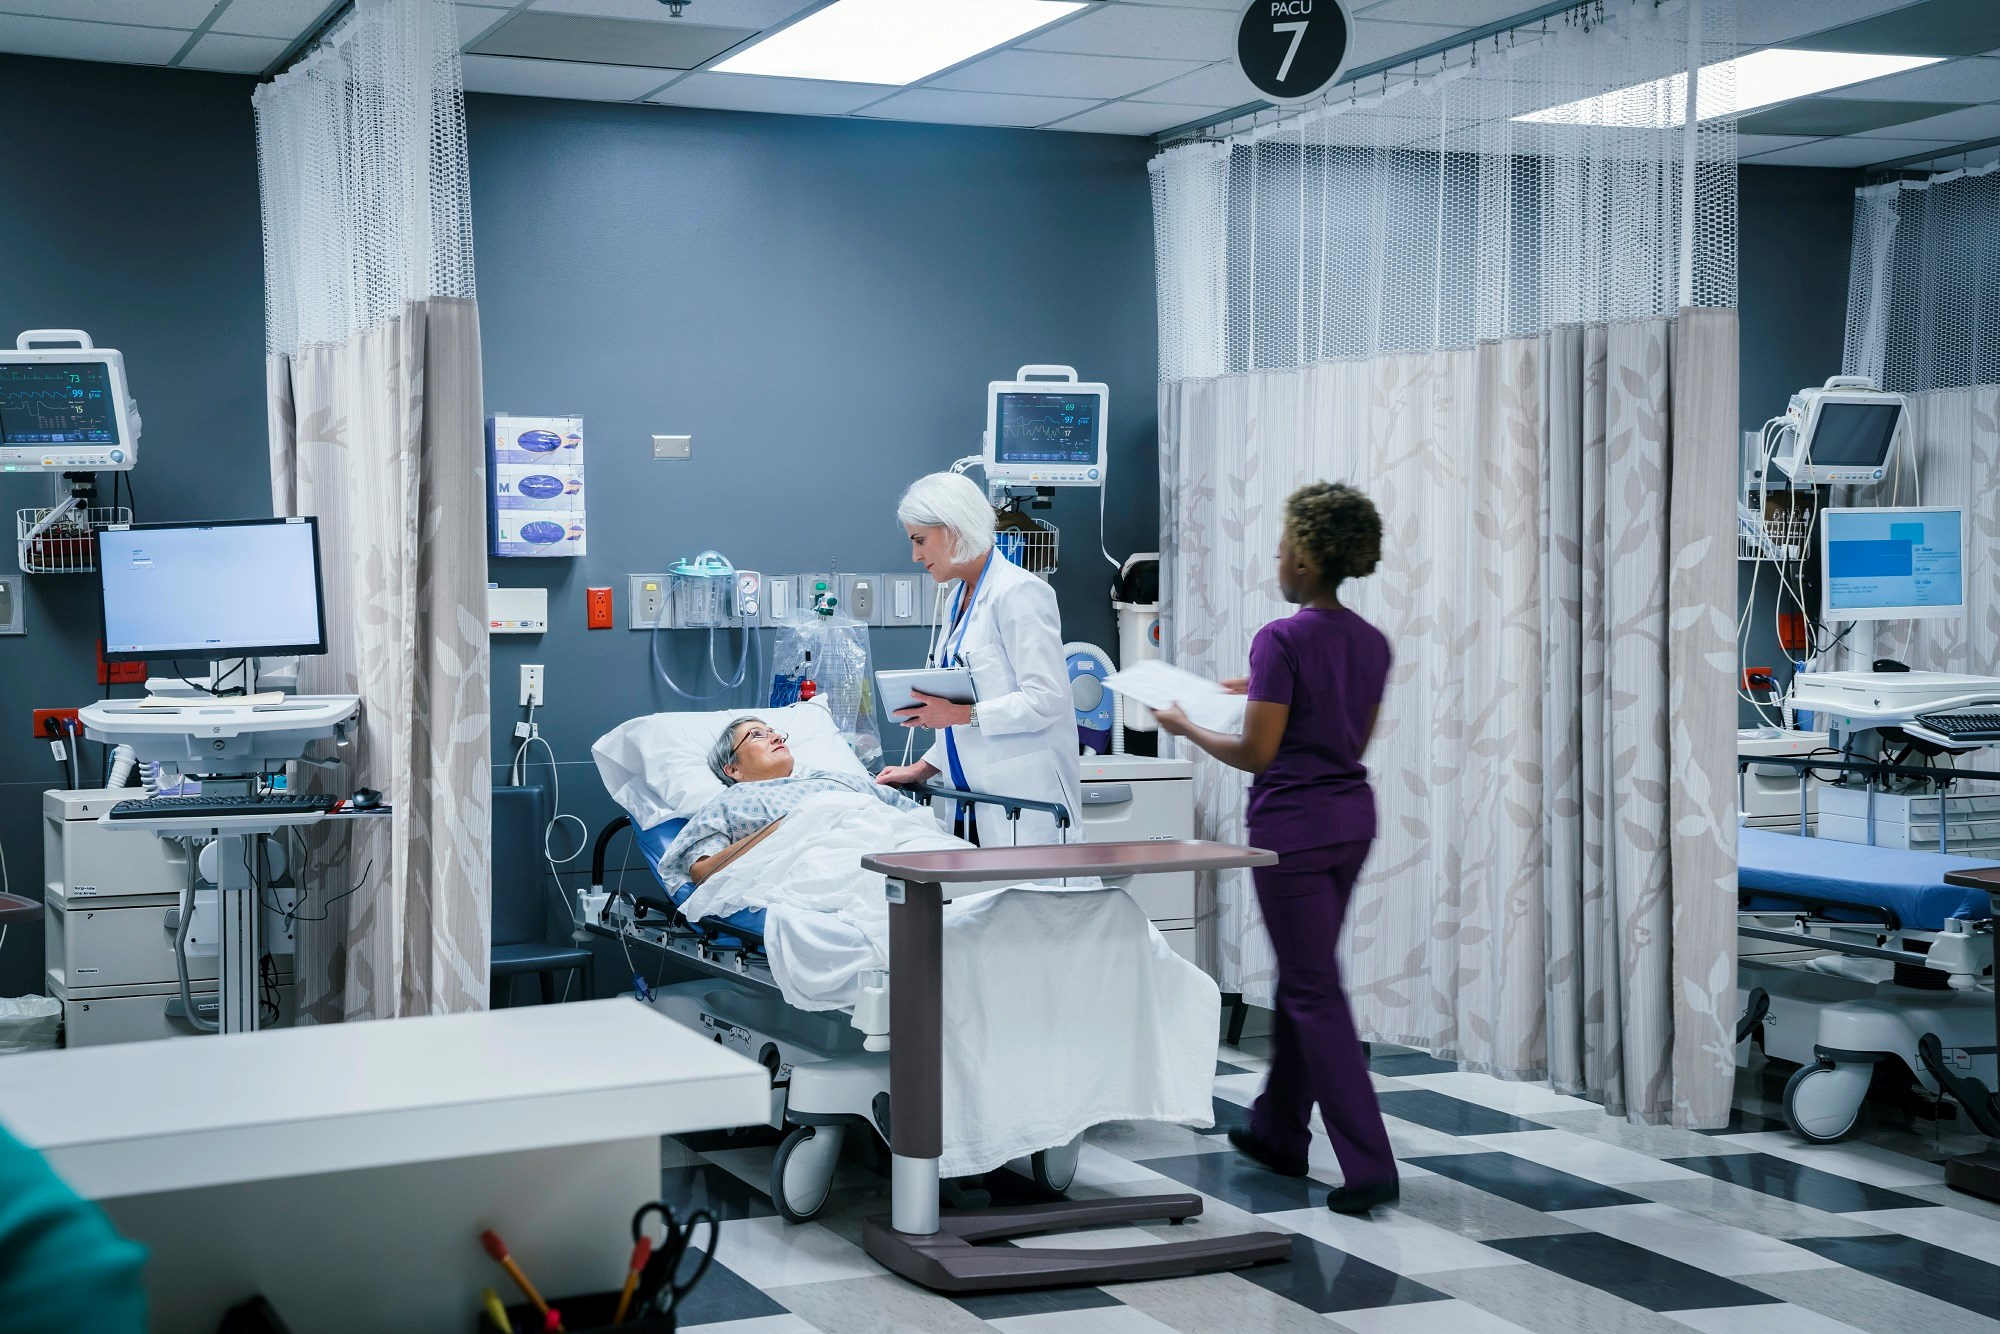 Infectious, Noninfectious Postoperative Complications More Frequent in Patients With SLE